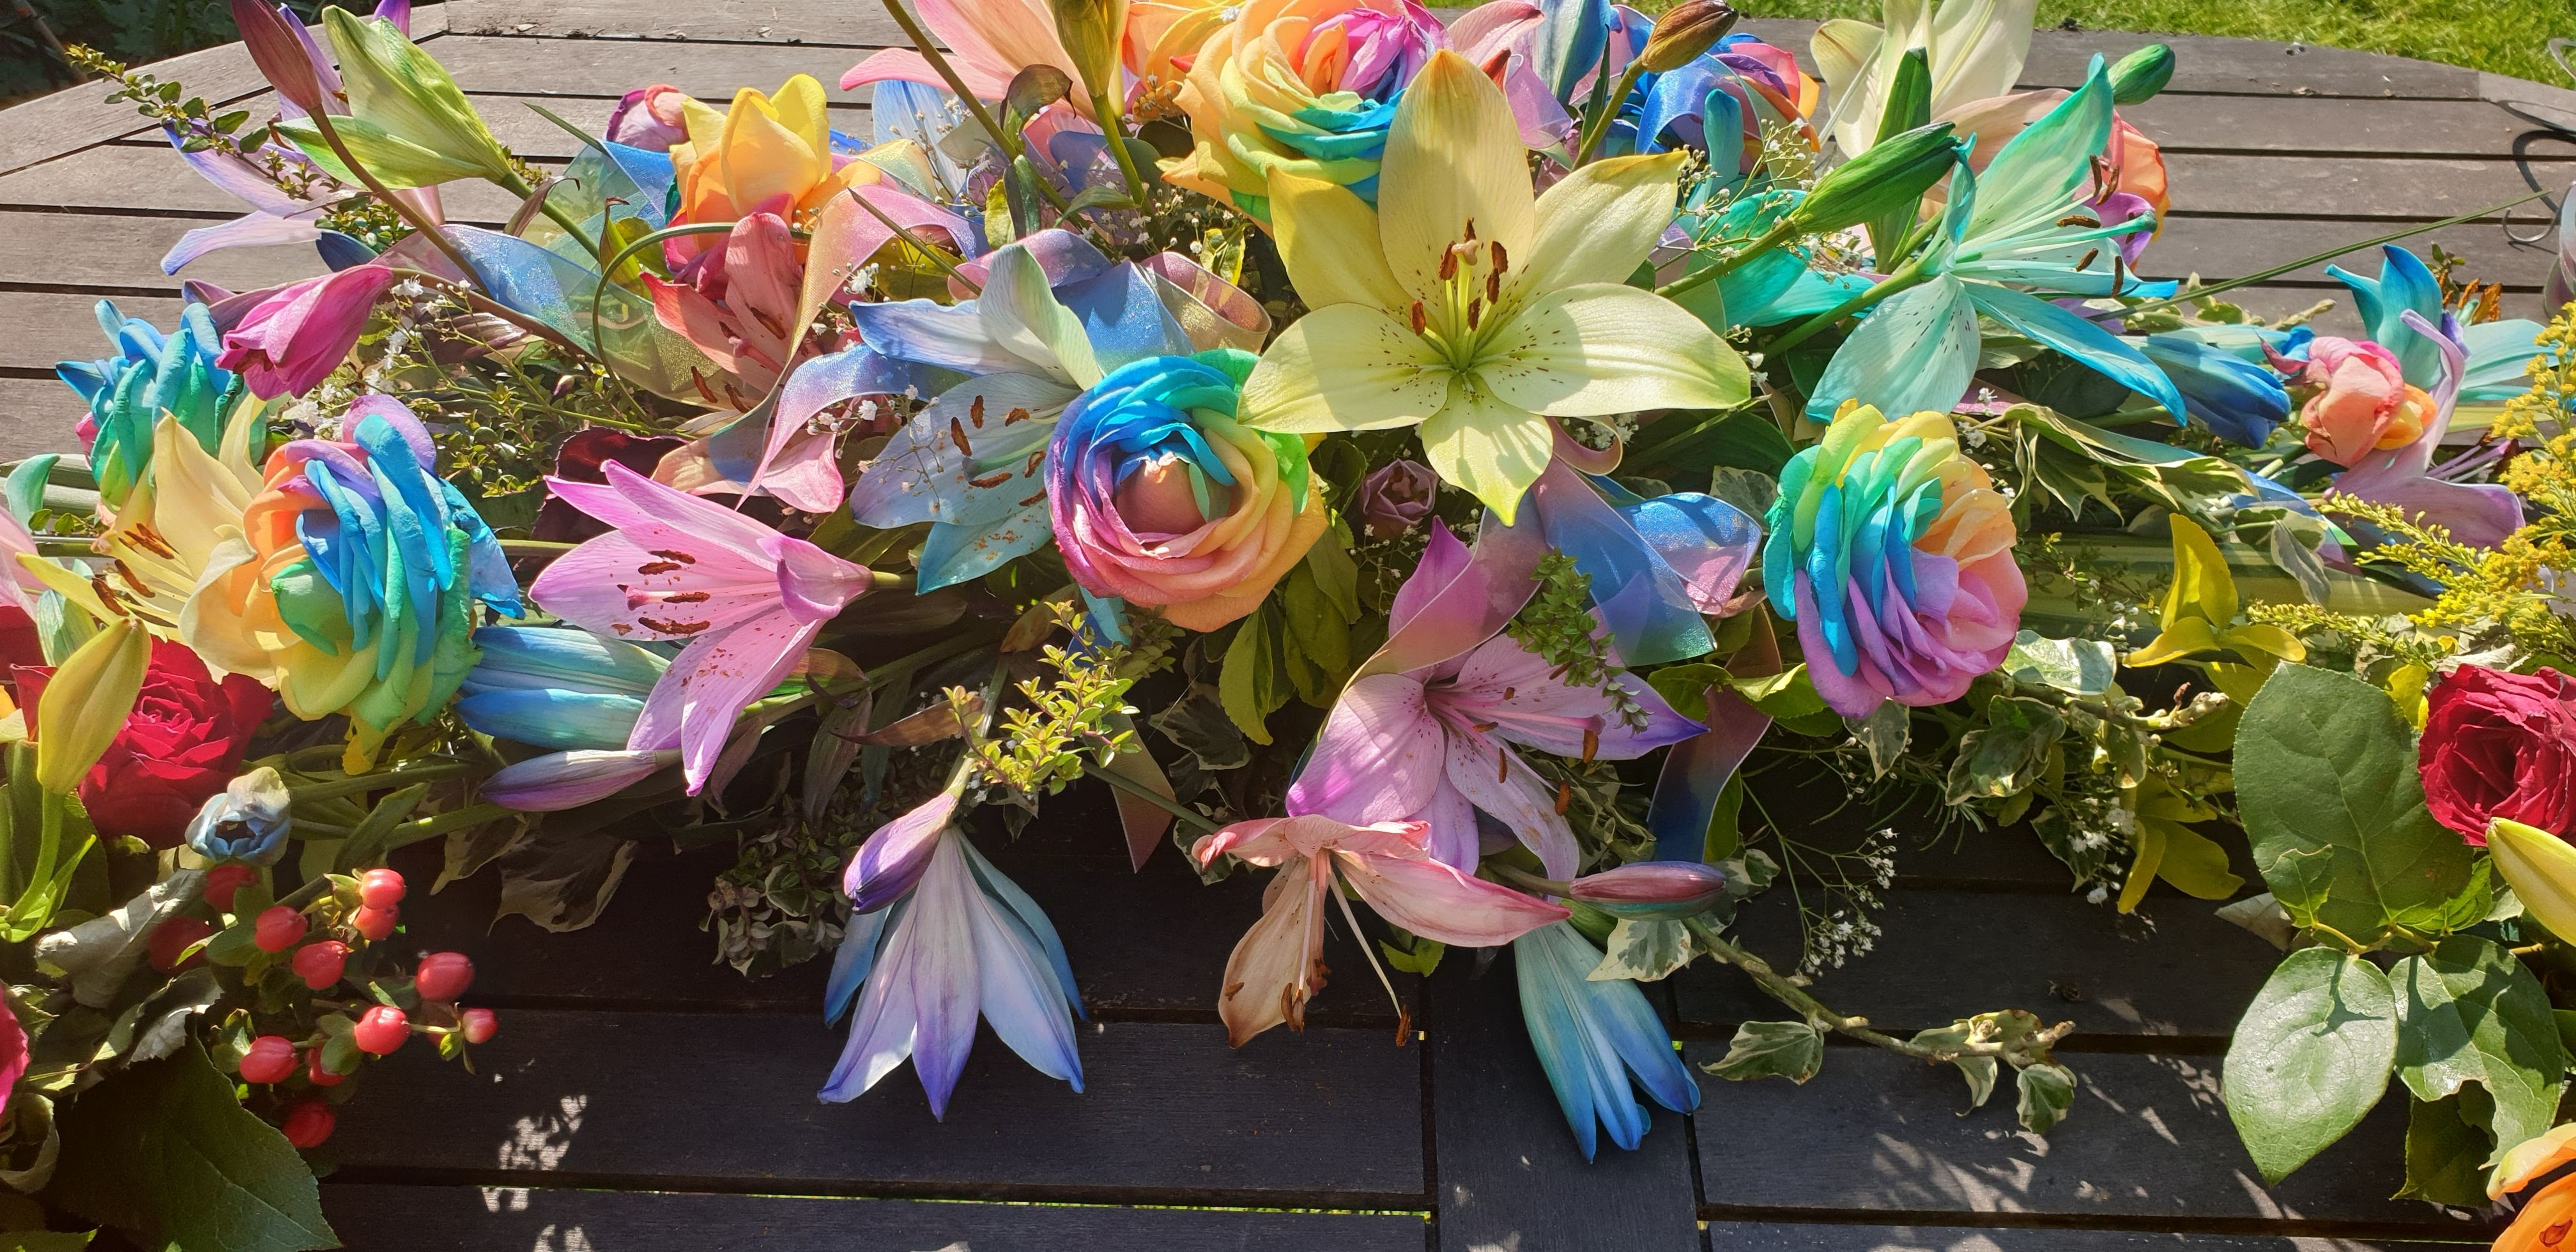 In Memory of Emily - floral tribute